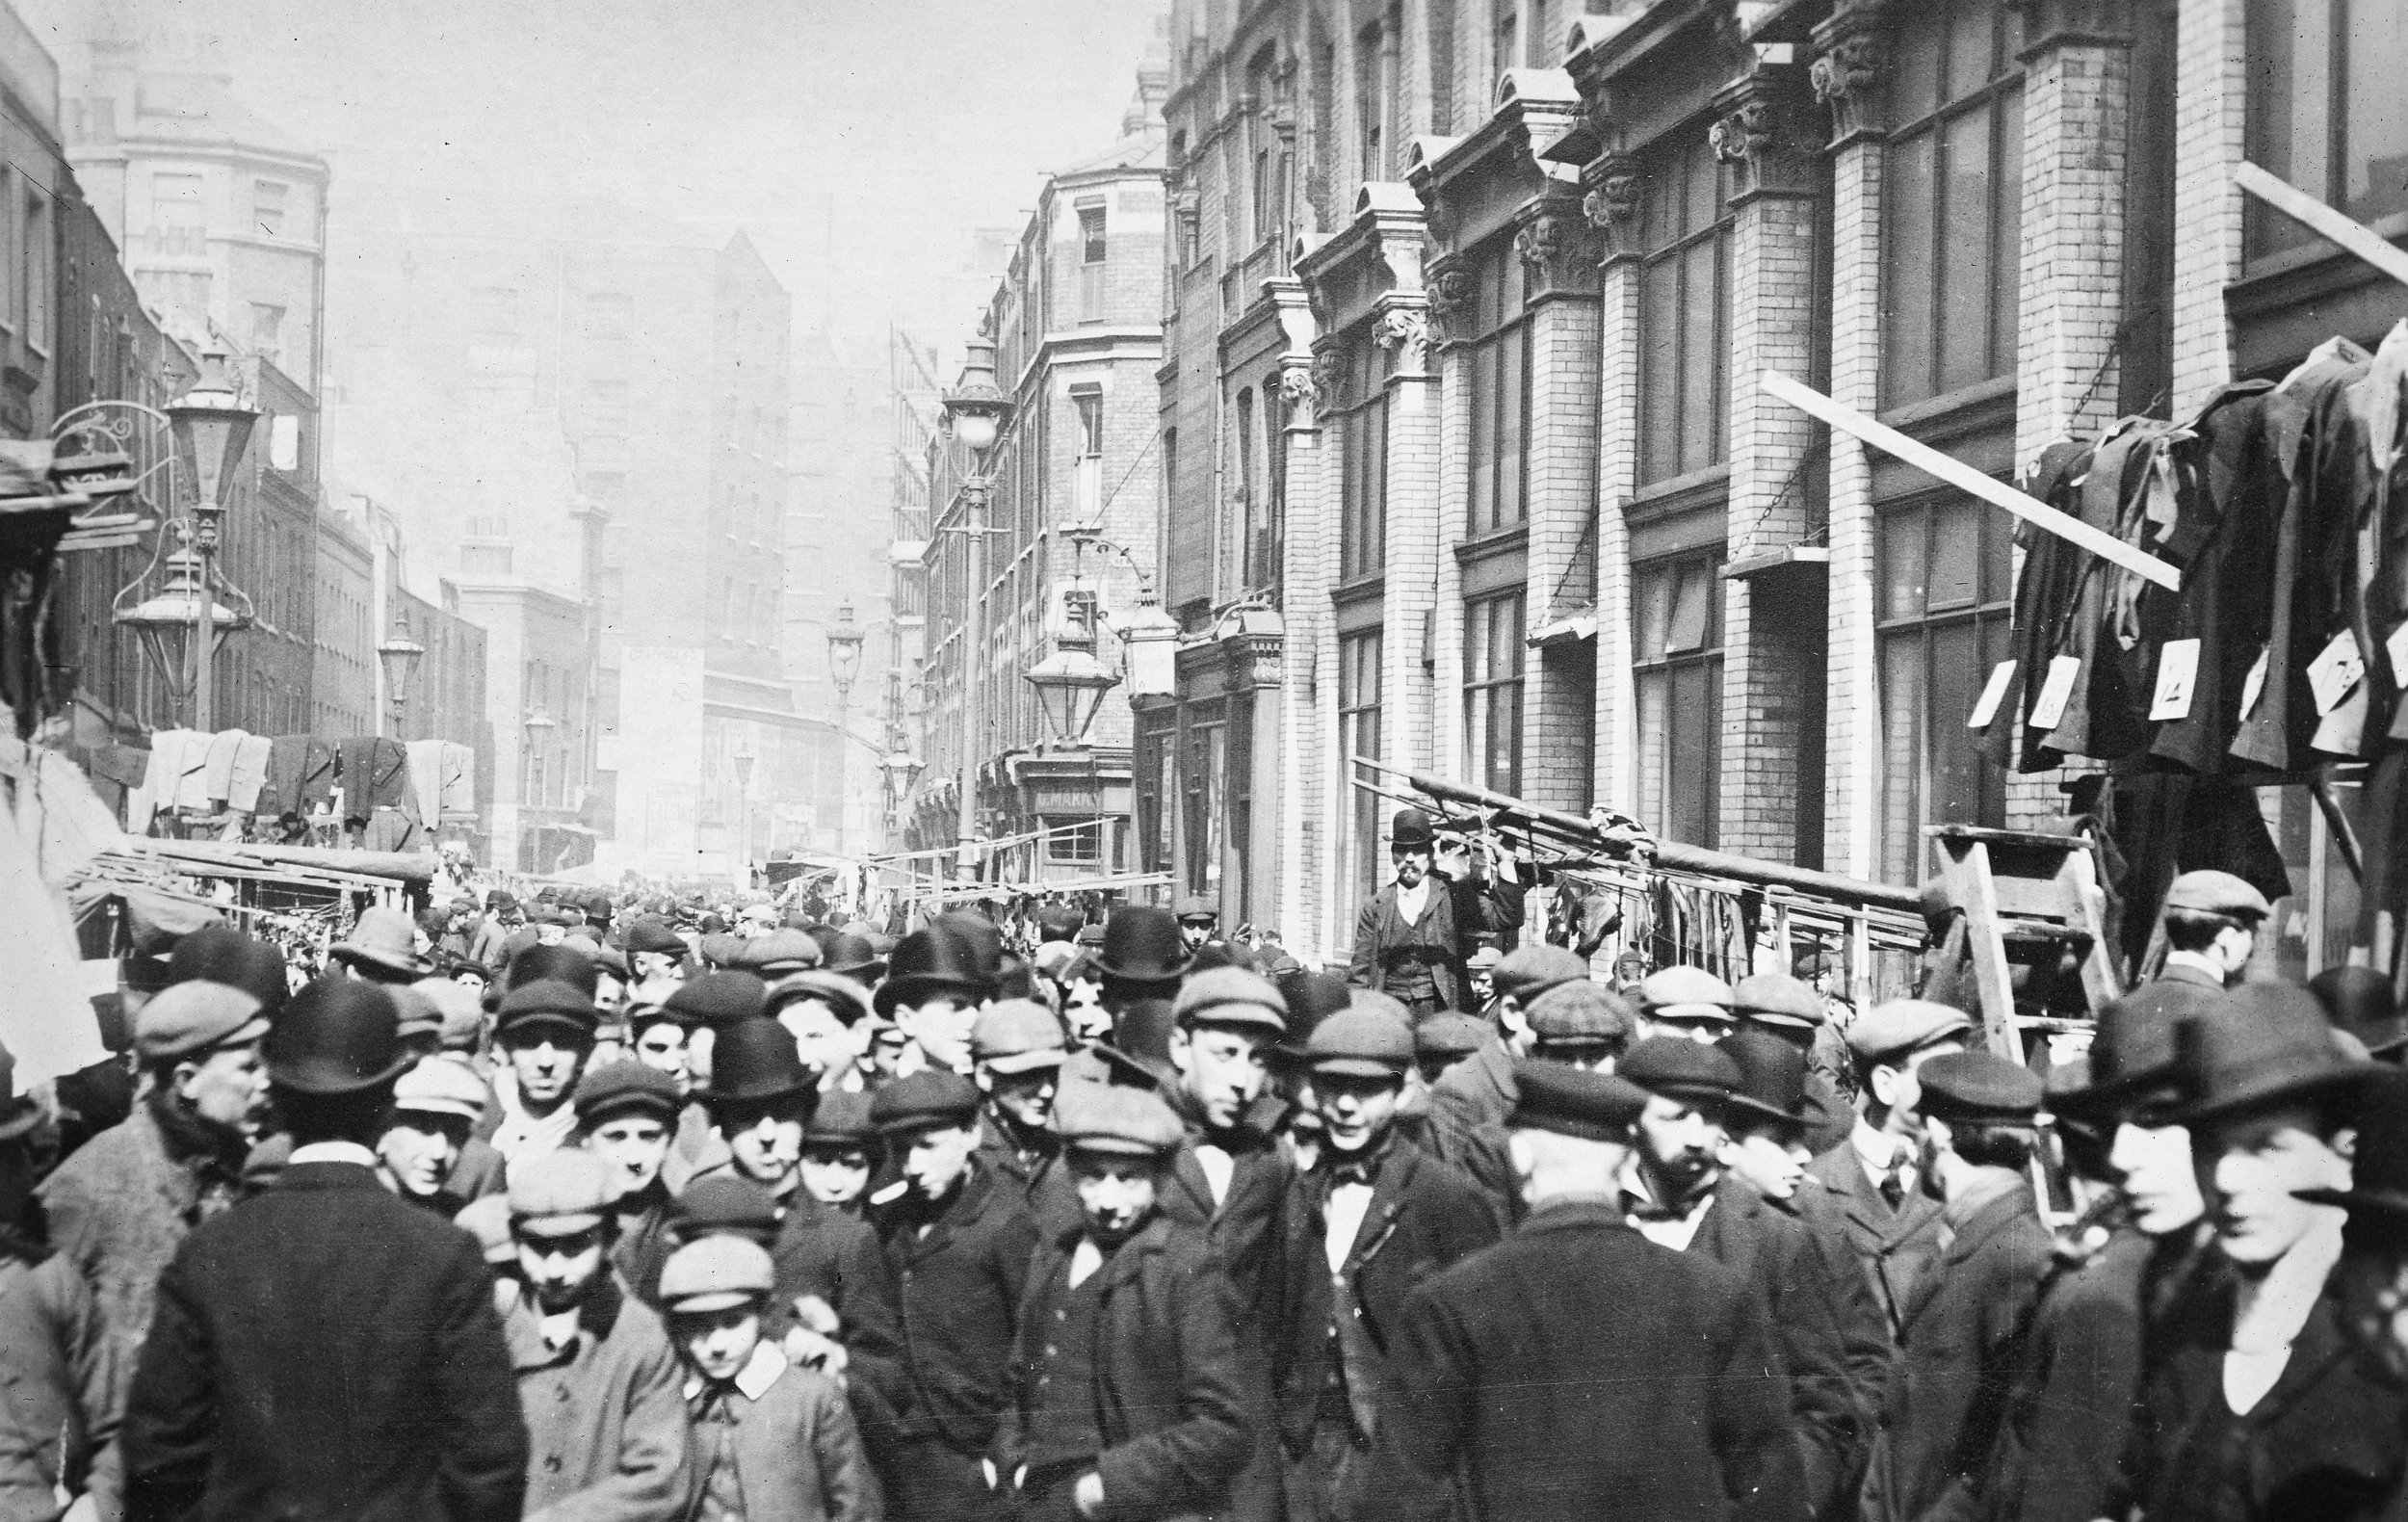 Wikimedia Commons: London Petticoat Lane 1920. CC